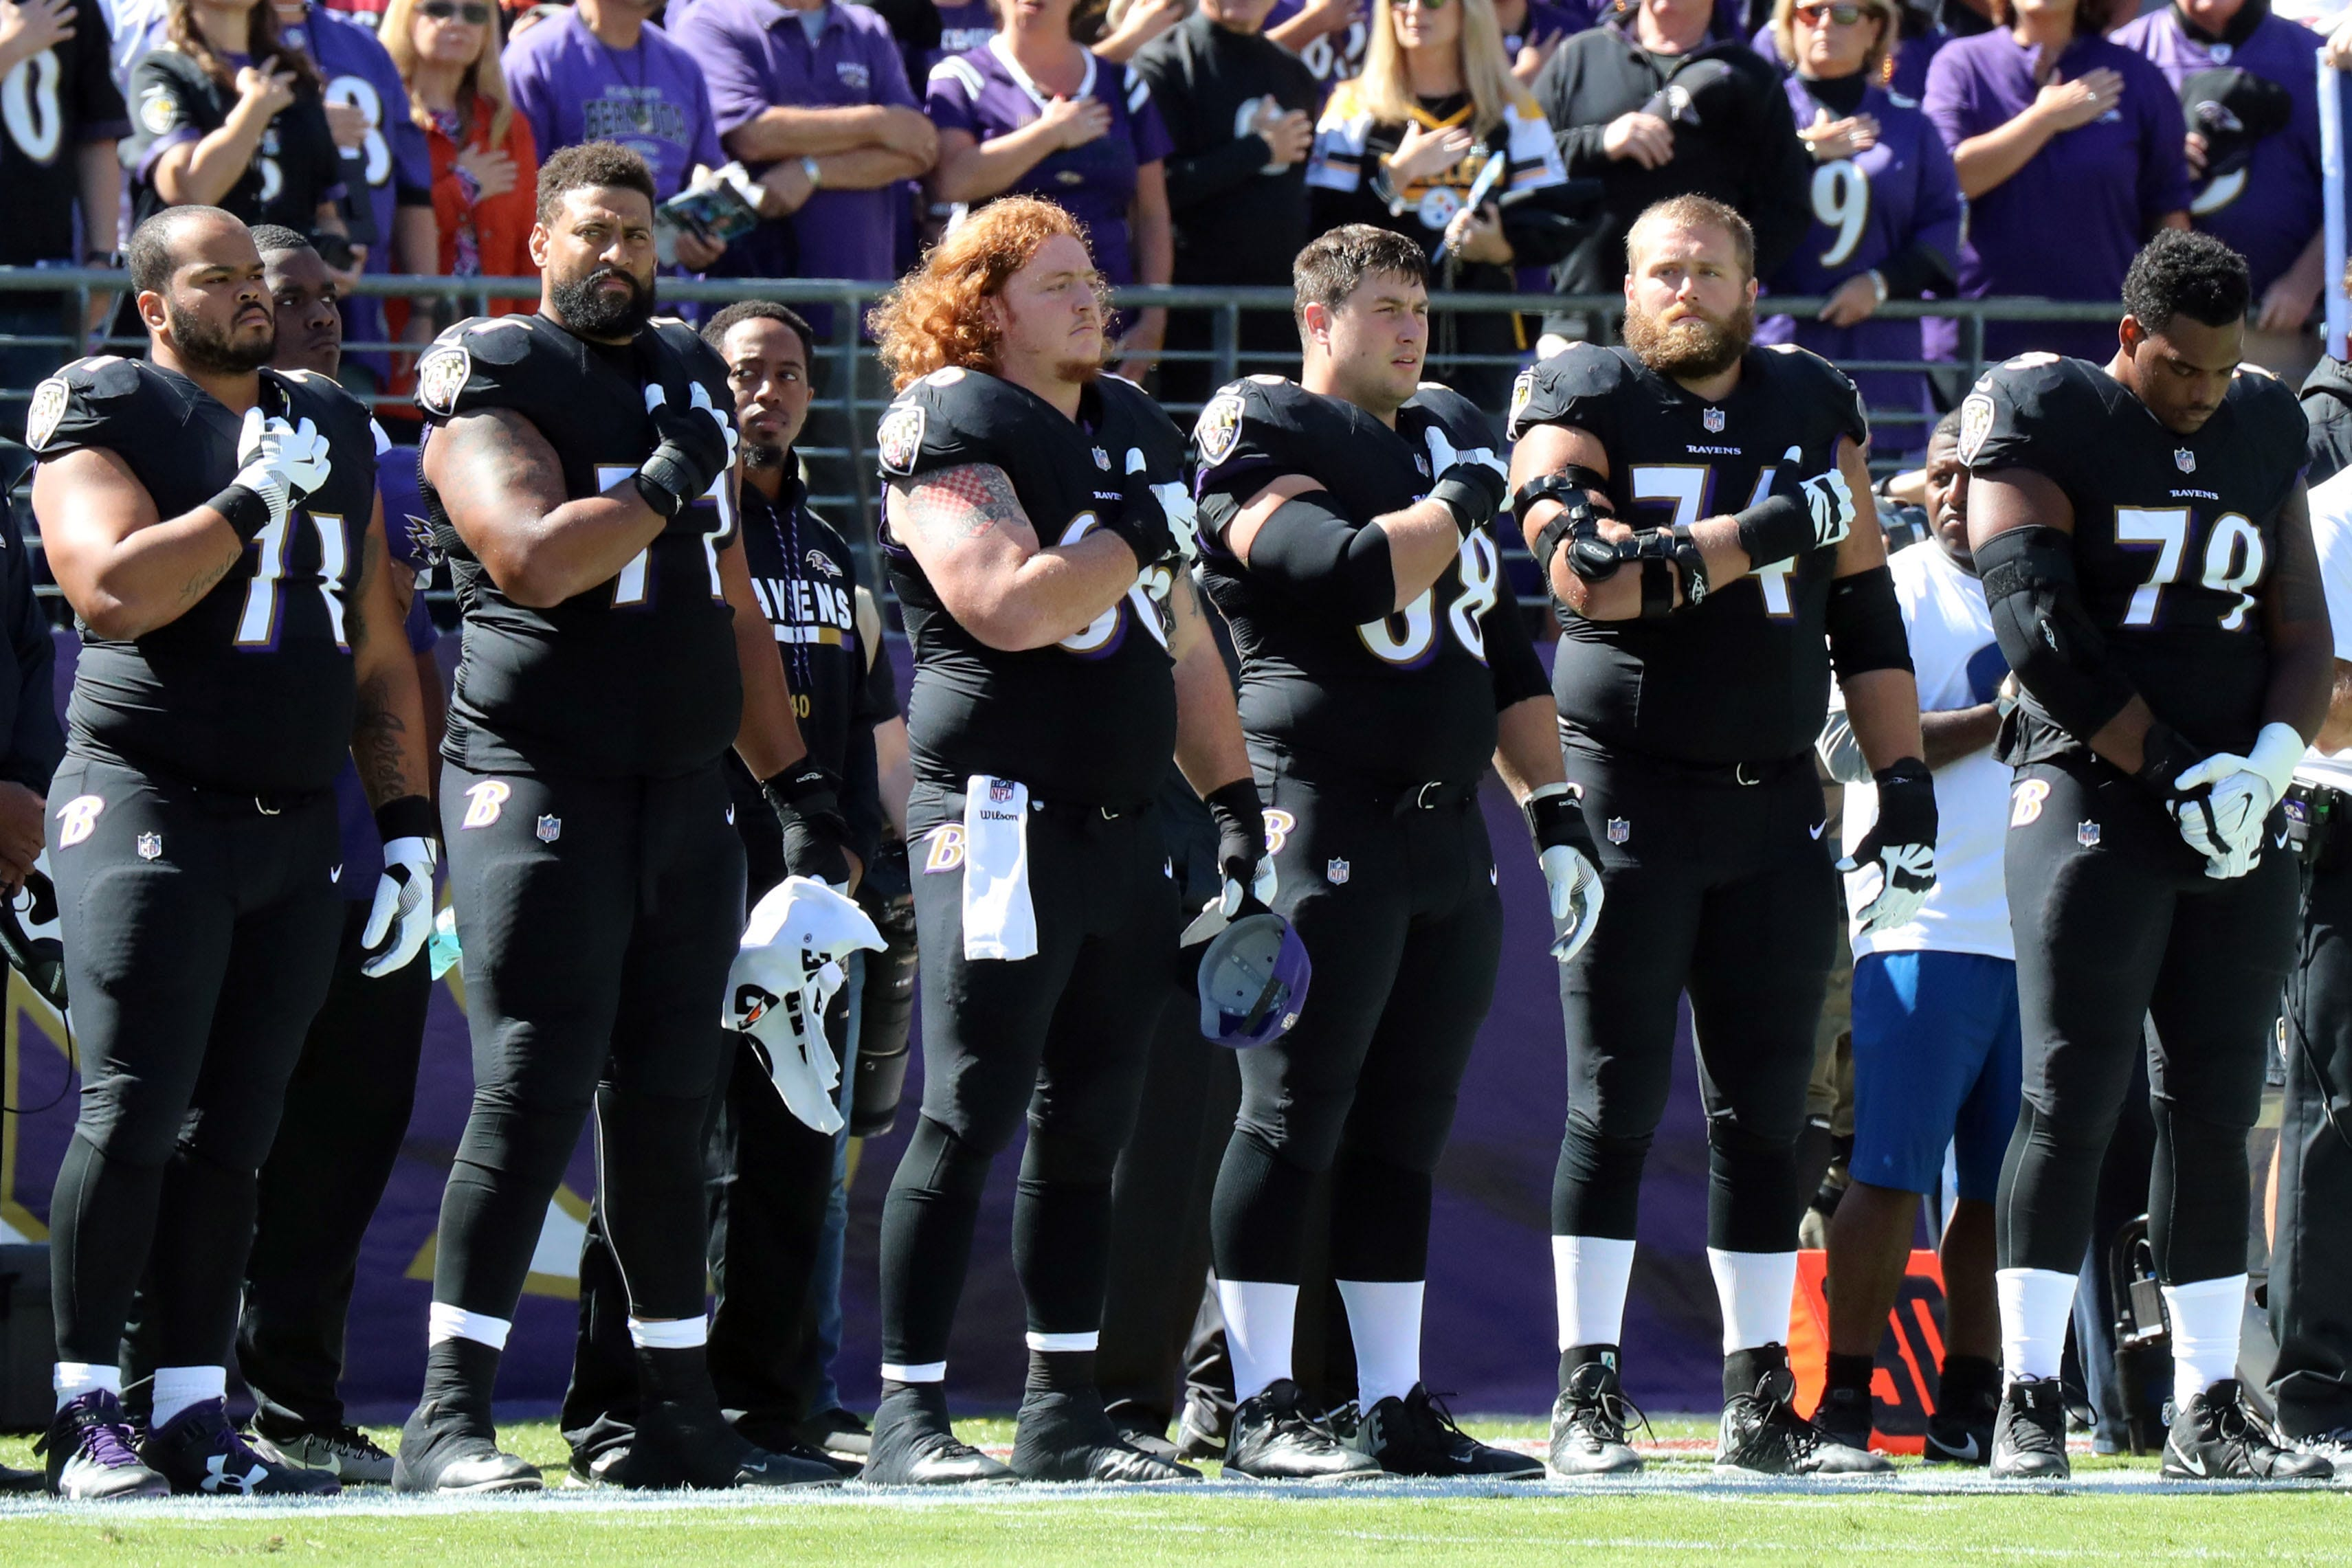 NFL's national anthem protest slowly cooling, though opinions remain sharply divided